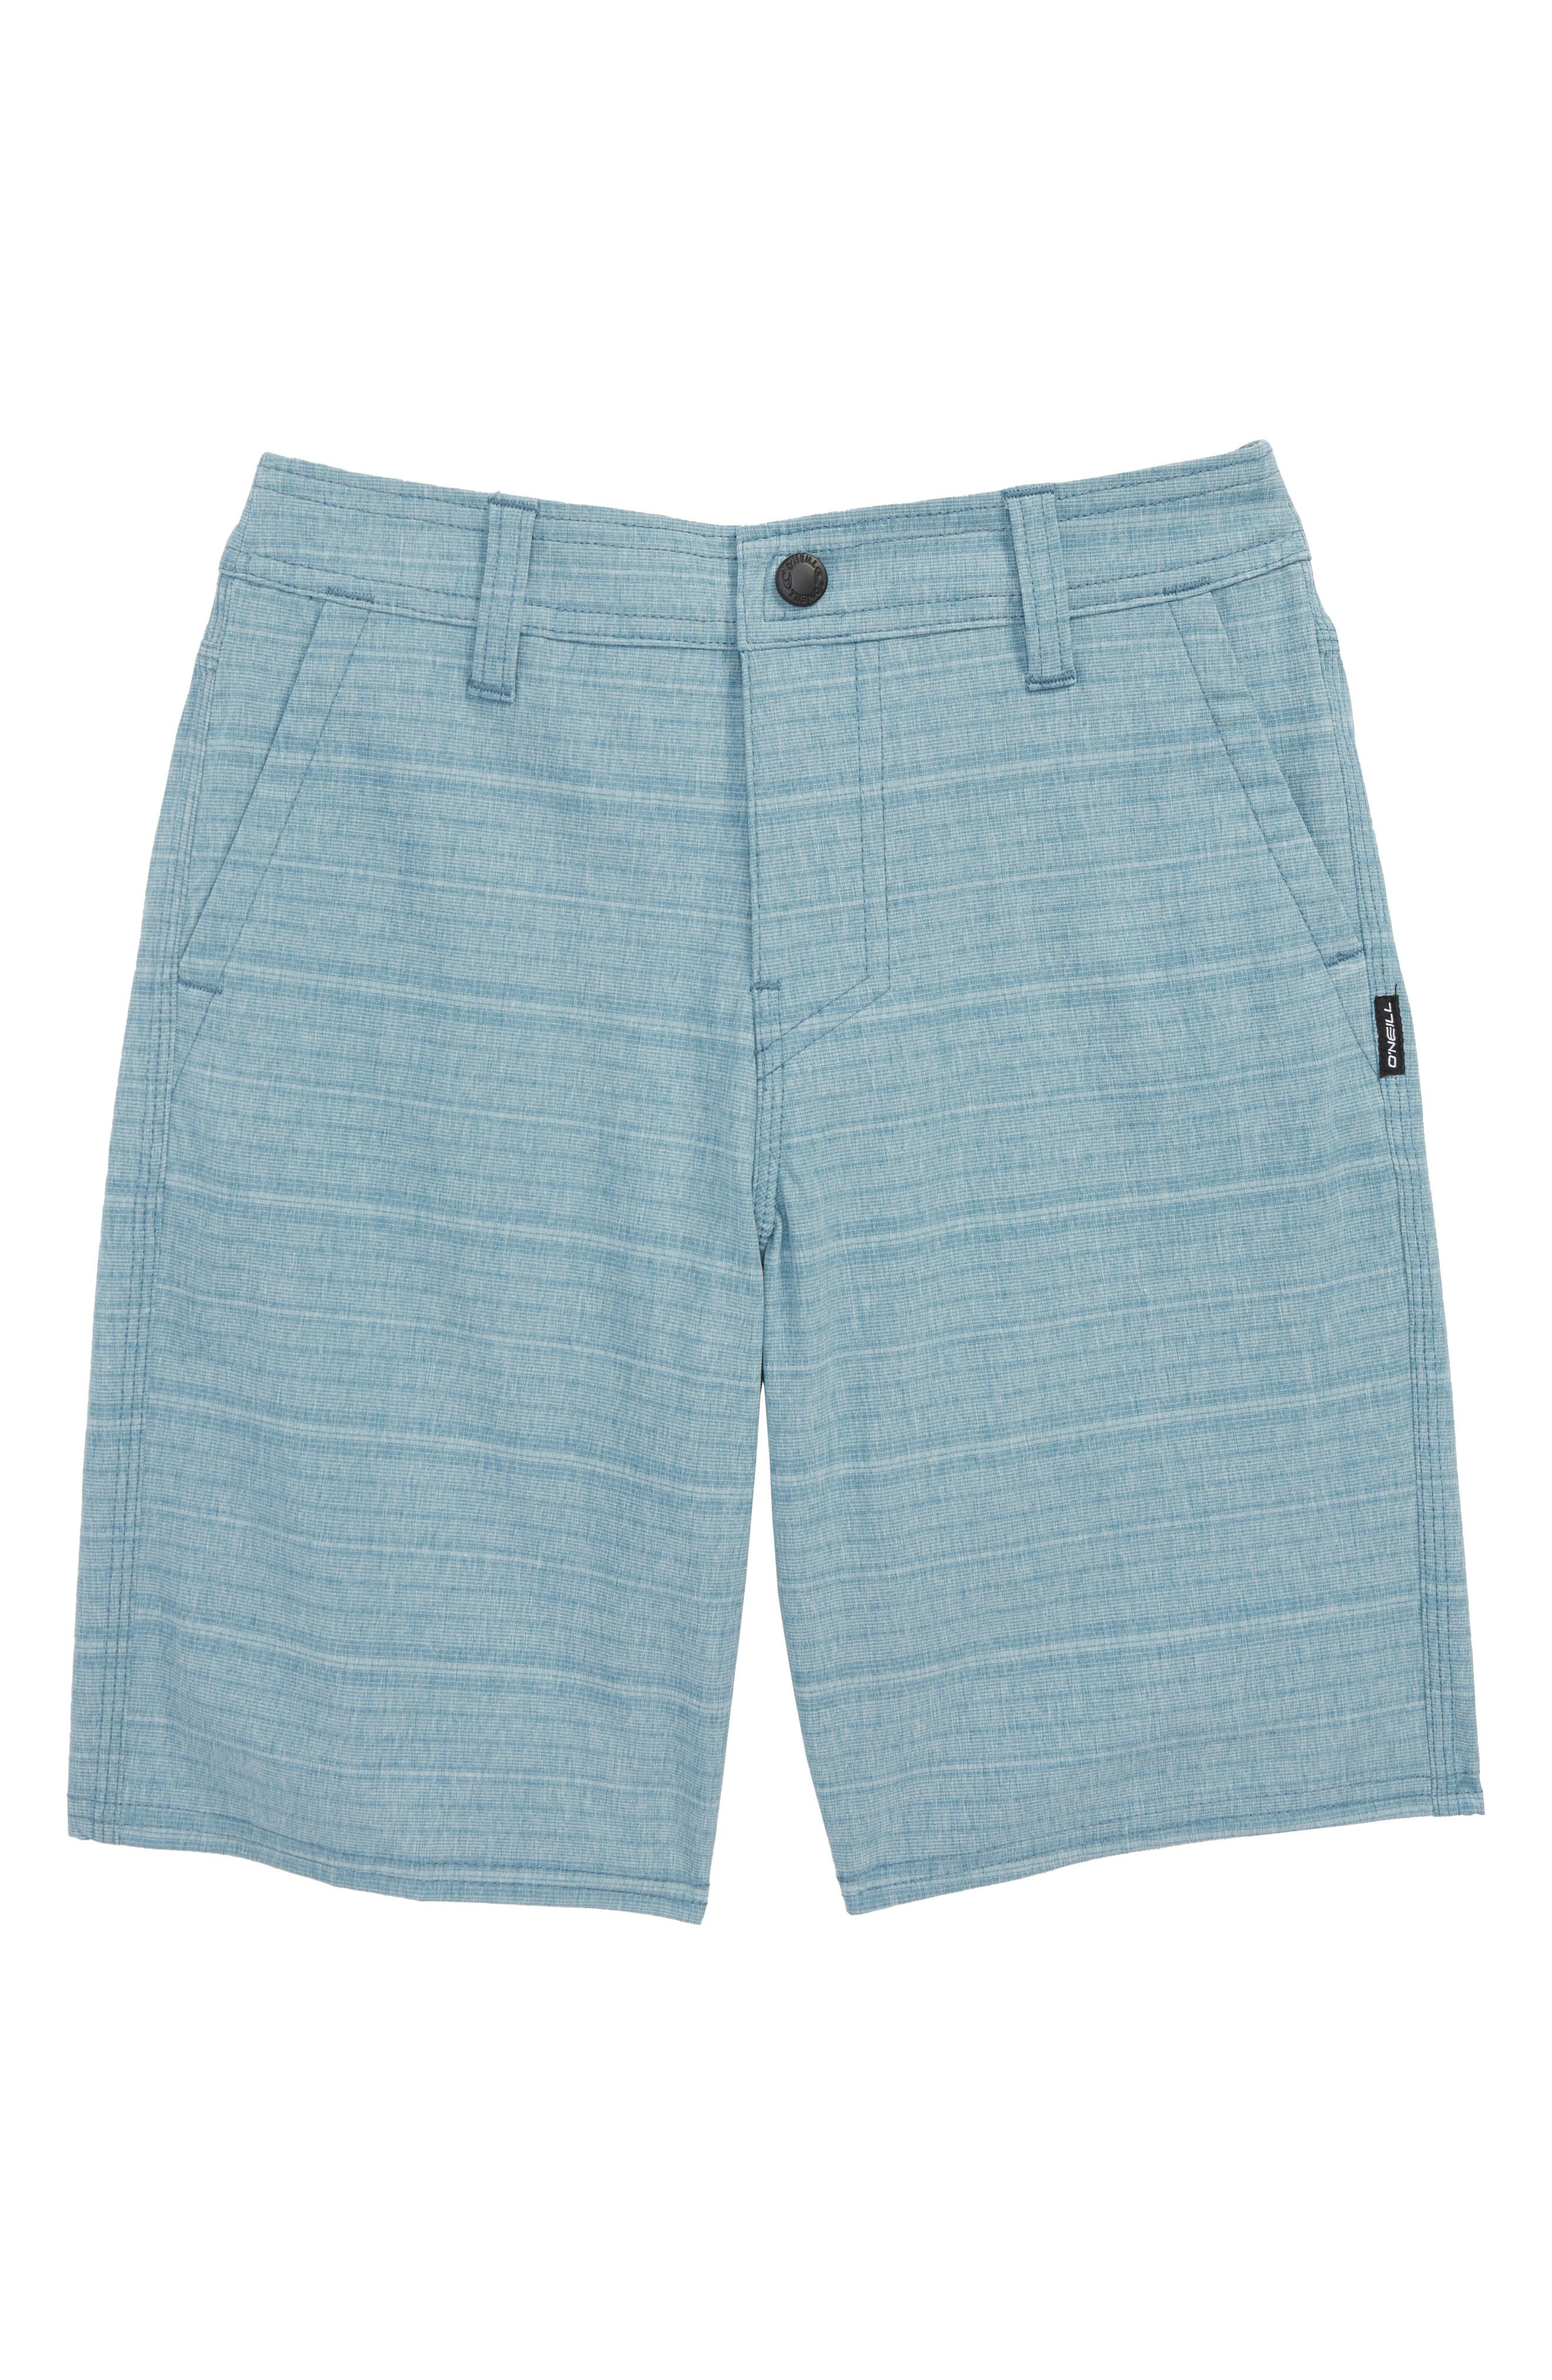 Main Image - O'Neill Locked Stripe Hybrid Shorts (Toddler Boys & Little Boys)